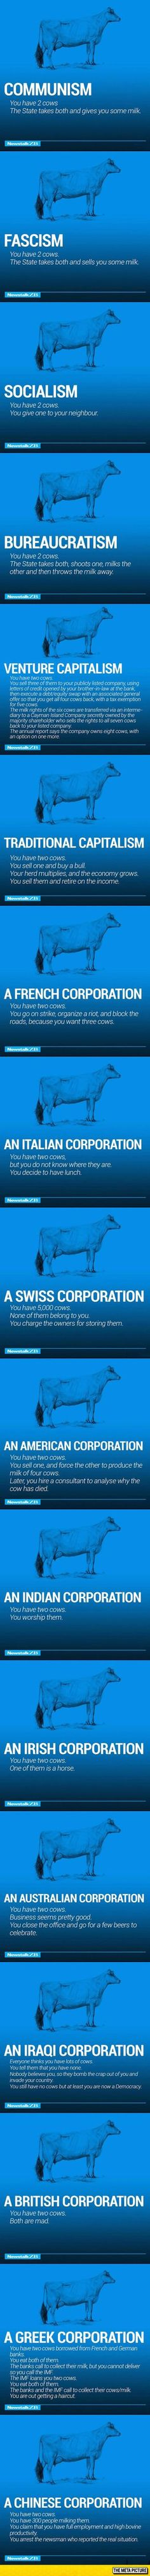 The World's Economy Explained With Just Two Cows (ME)